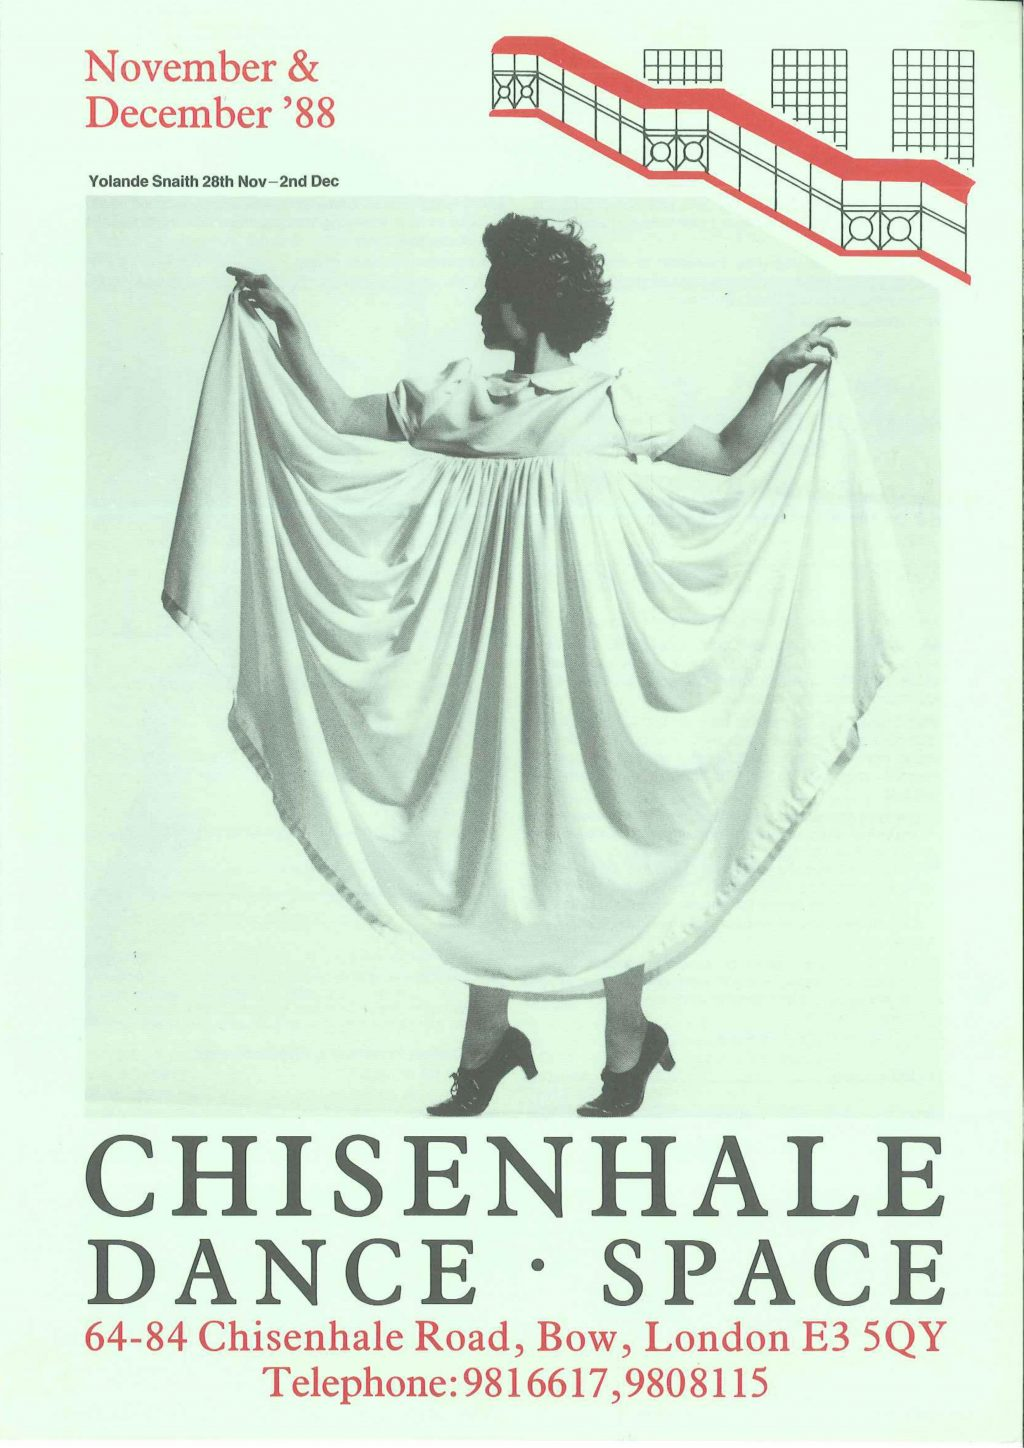 A 1988 poster advertising a Chisenhale Dance Space performance